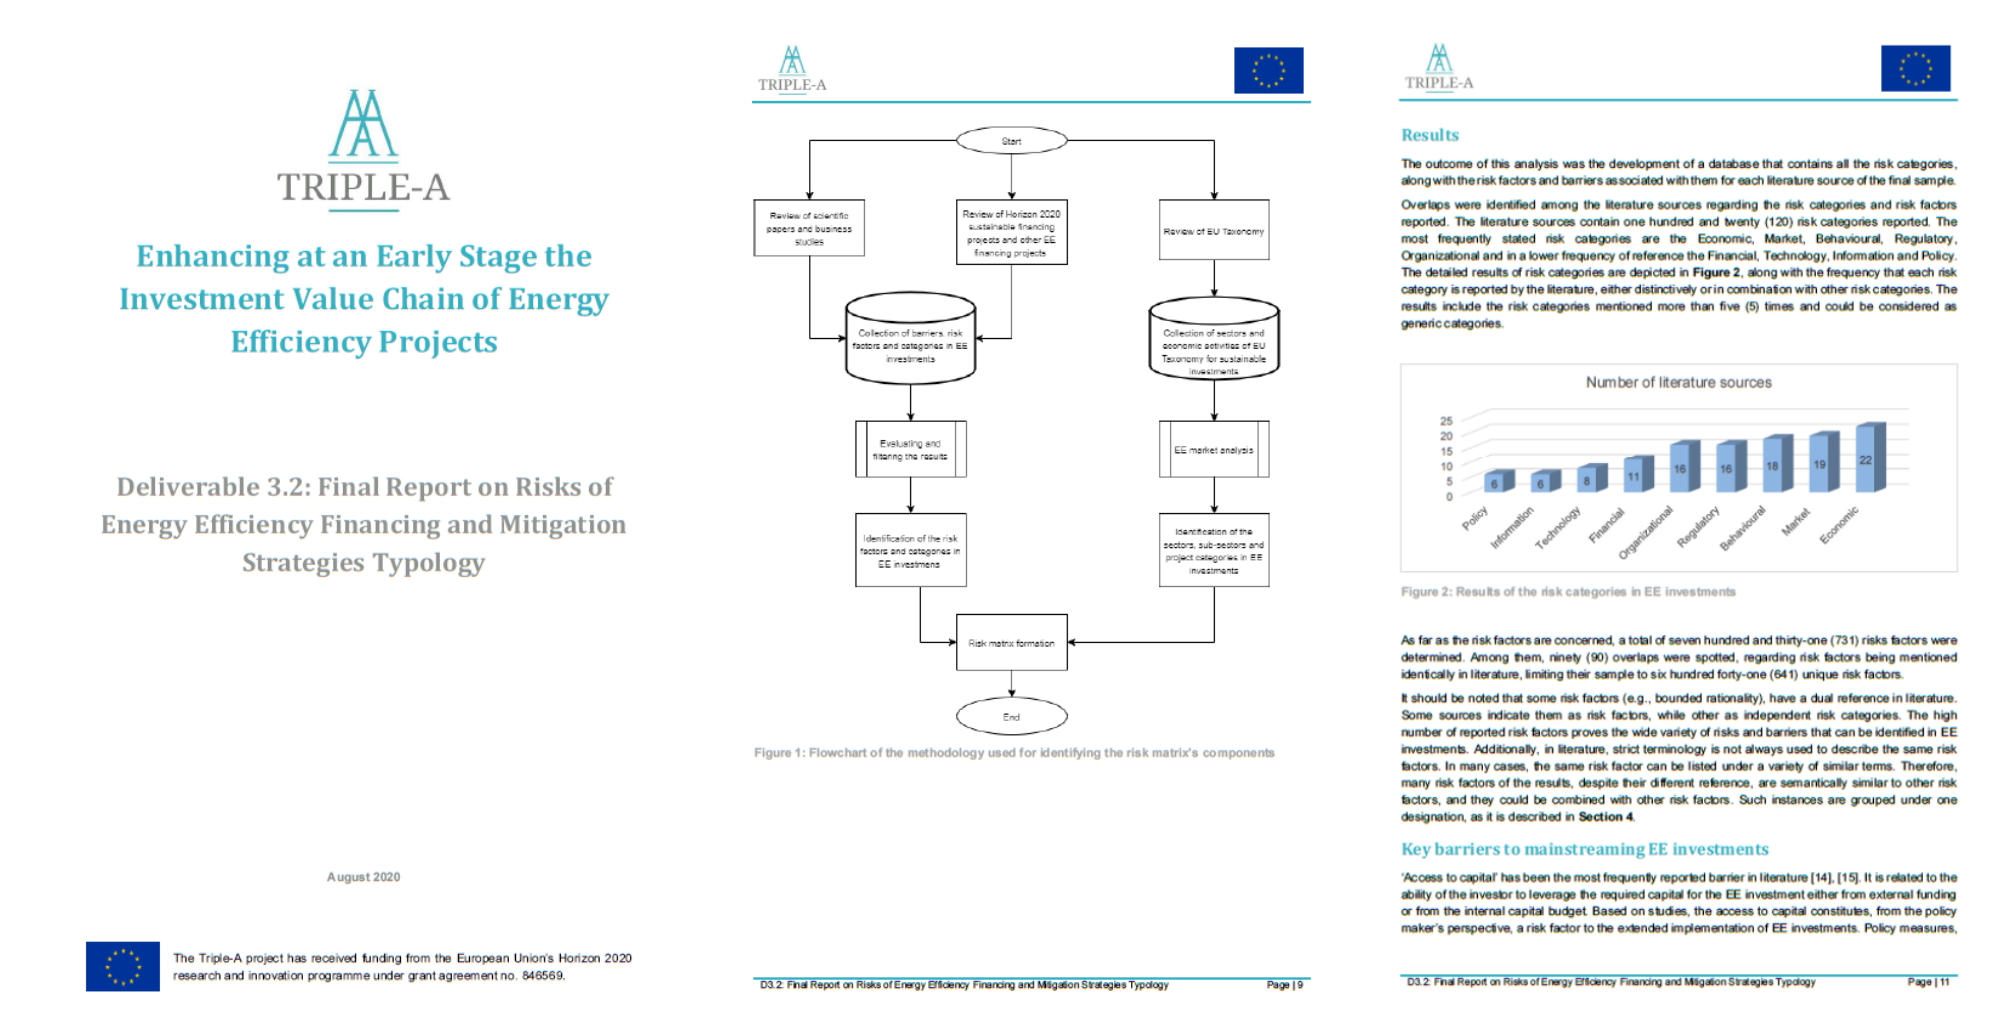 Triple-A Report on Risks of Energy Efficiency Financing and Mitigation Strategies Typology